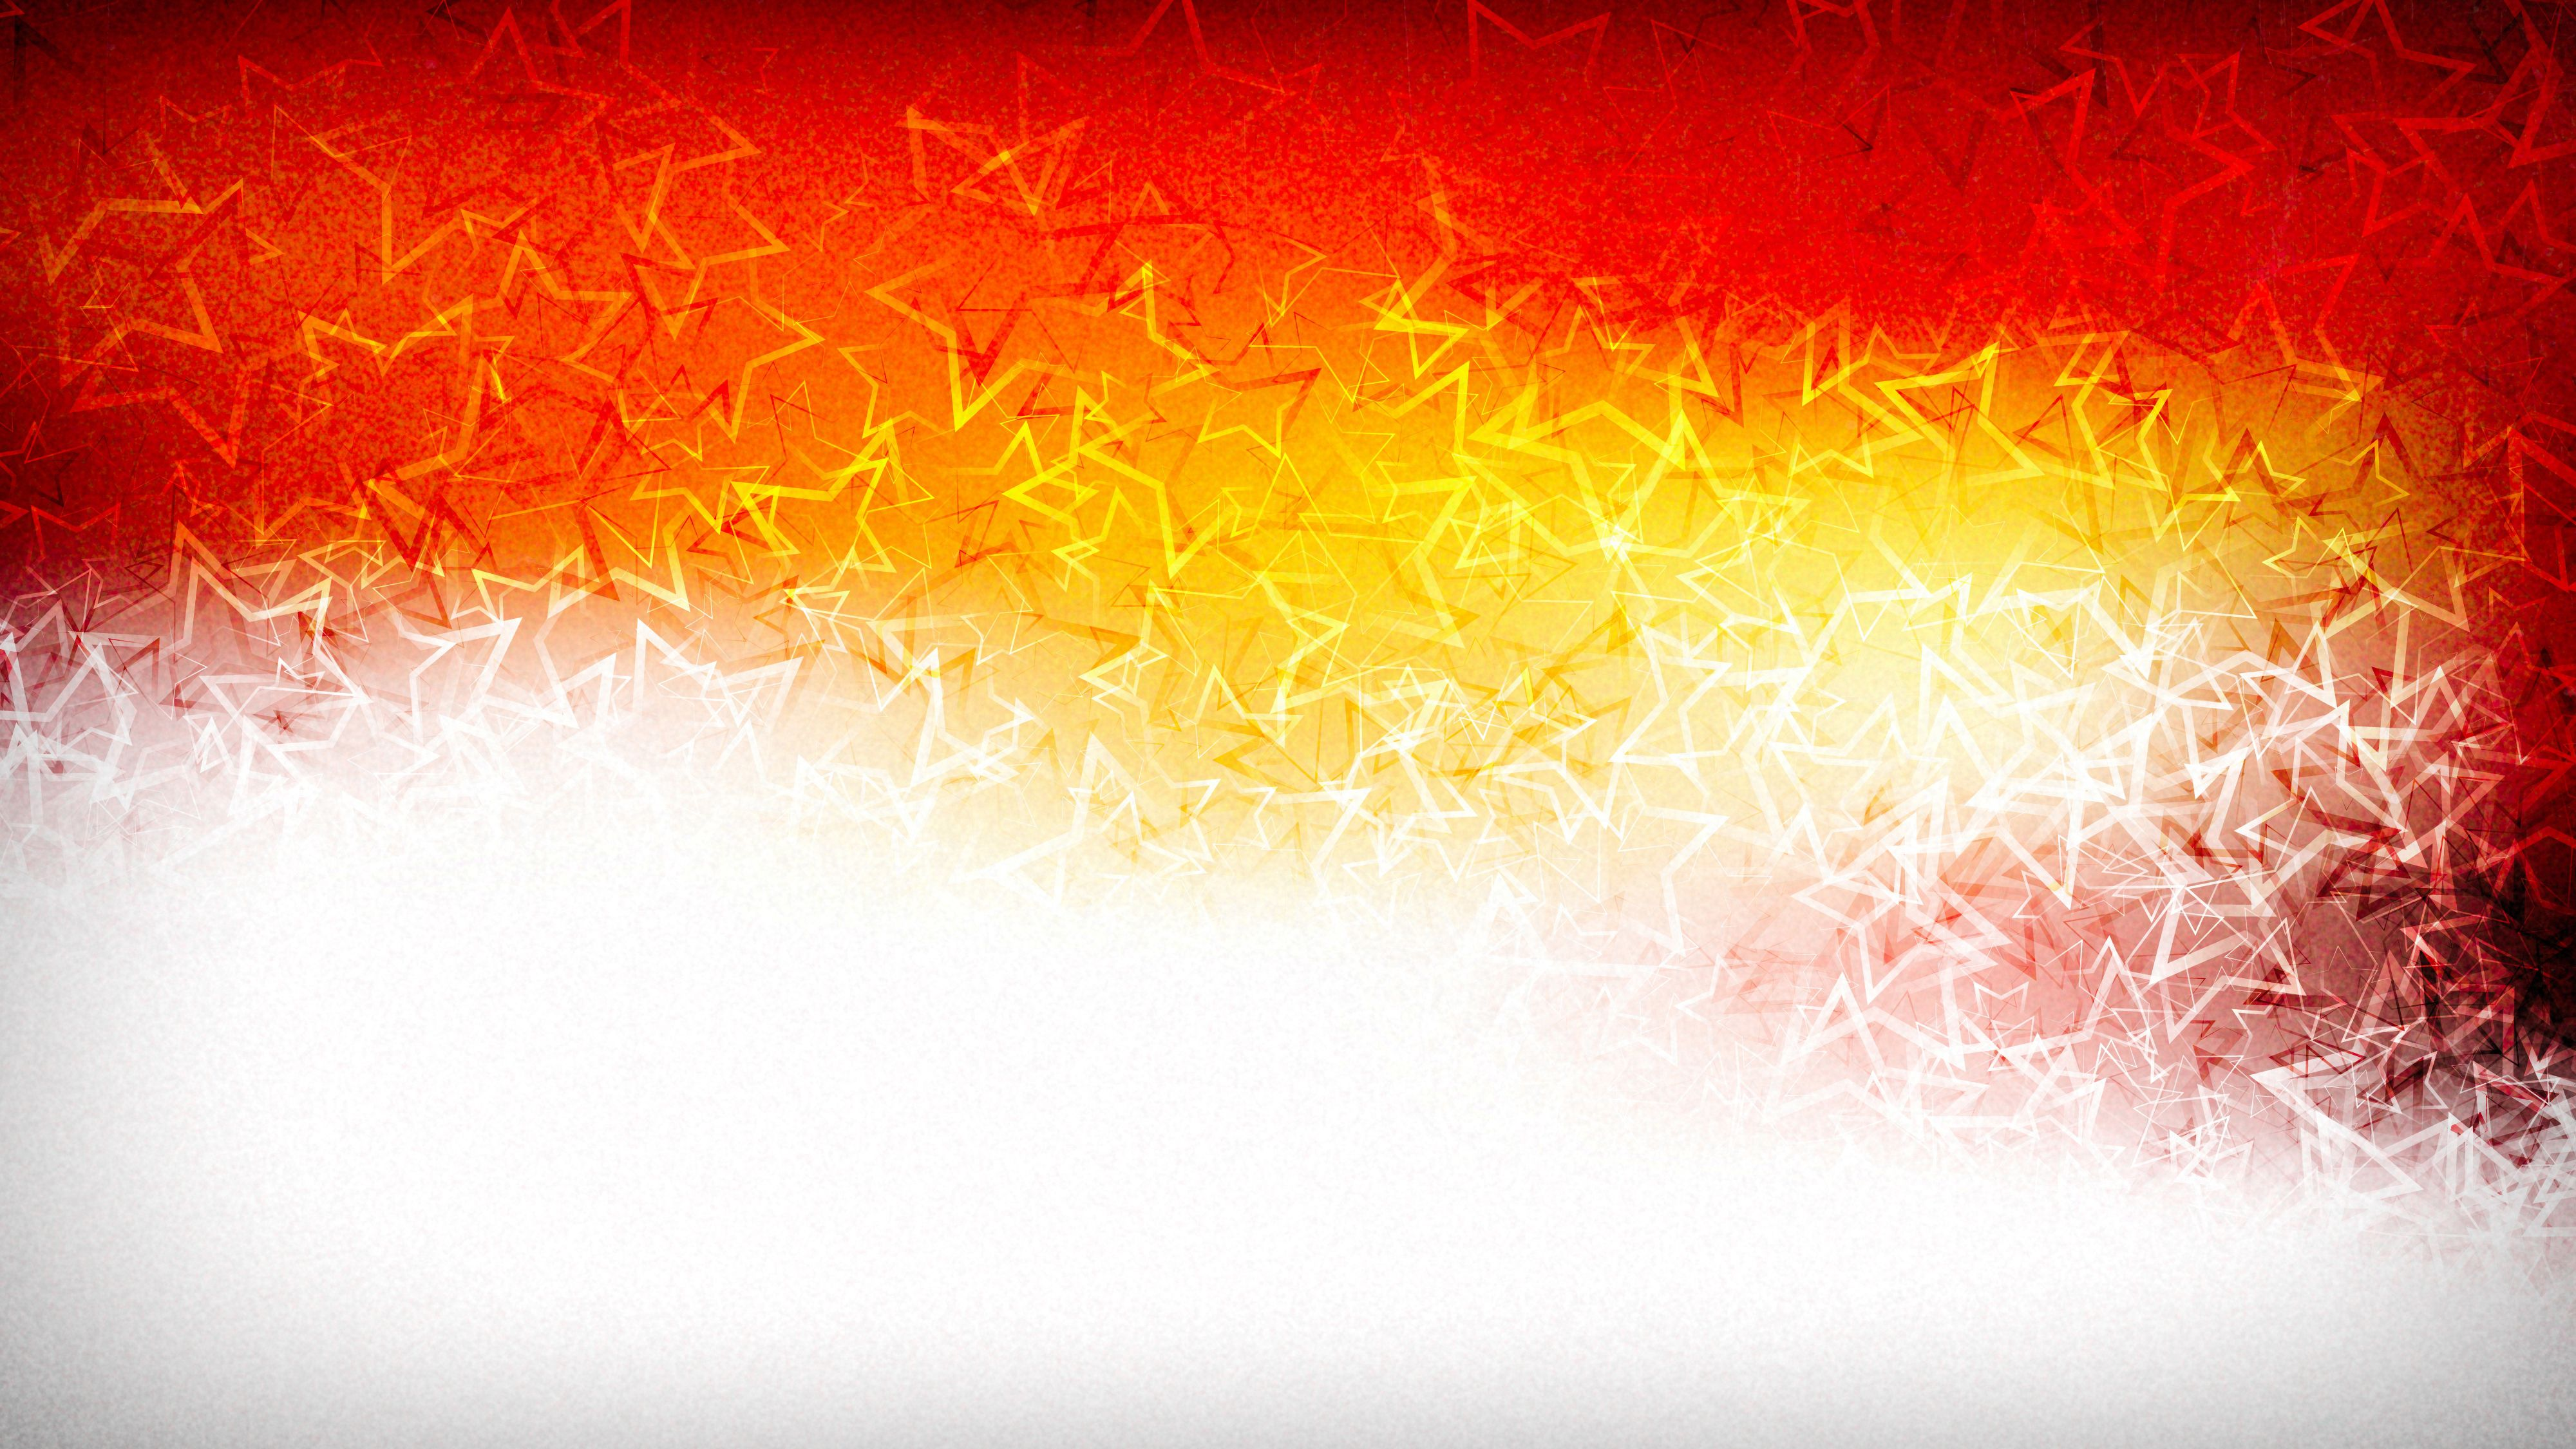 Red Orange Yellow Free Background Image Design Graphicdesign Creative Wallpaper Backgr Free Background Images Red Background Images Background Images